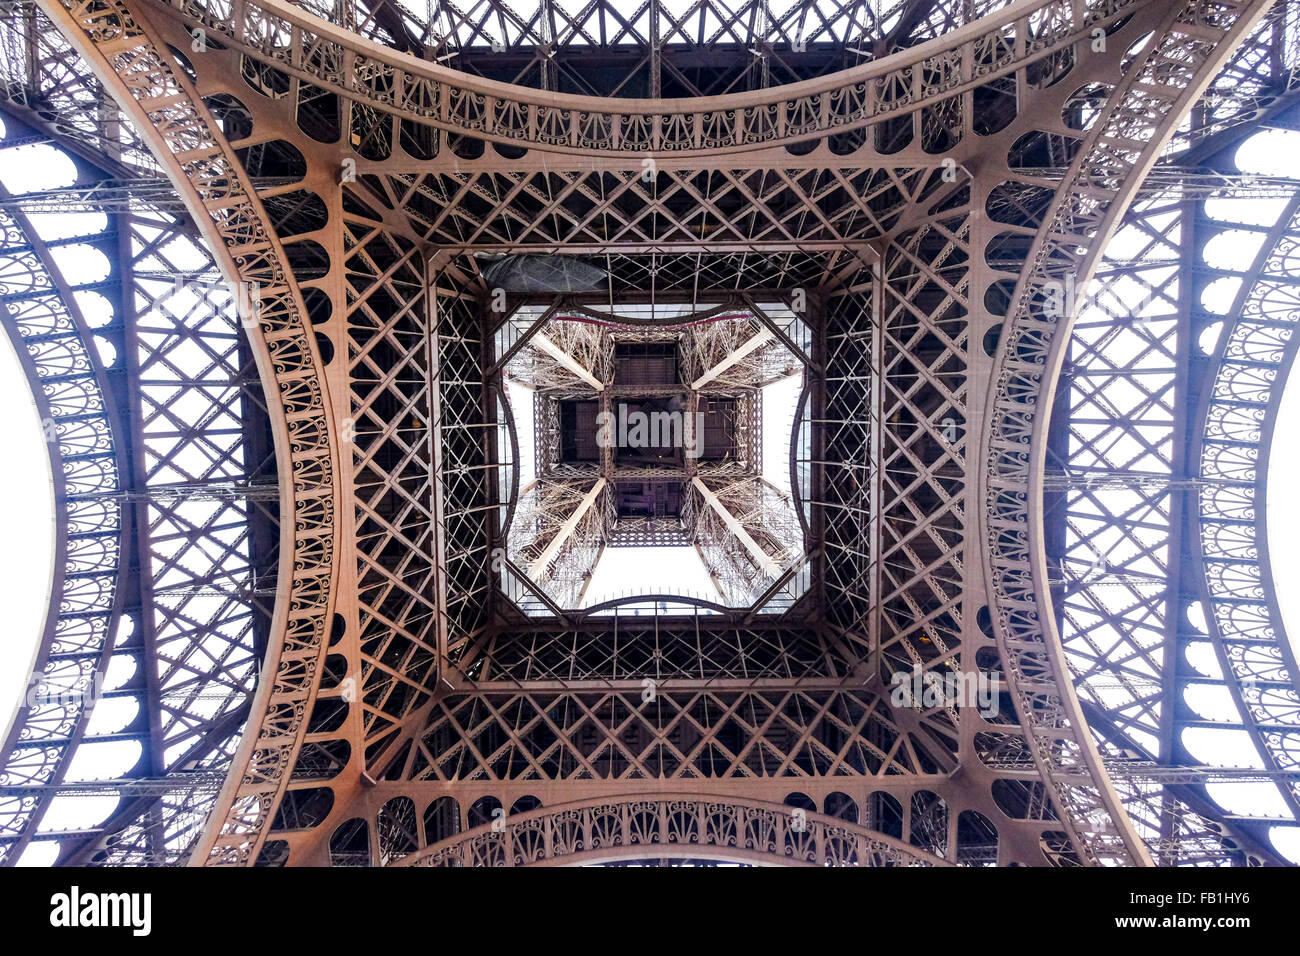 Vue du bas sous la Tour Eiffel. Photo Stock